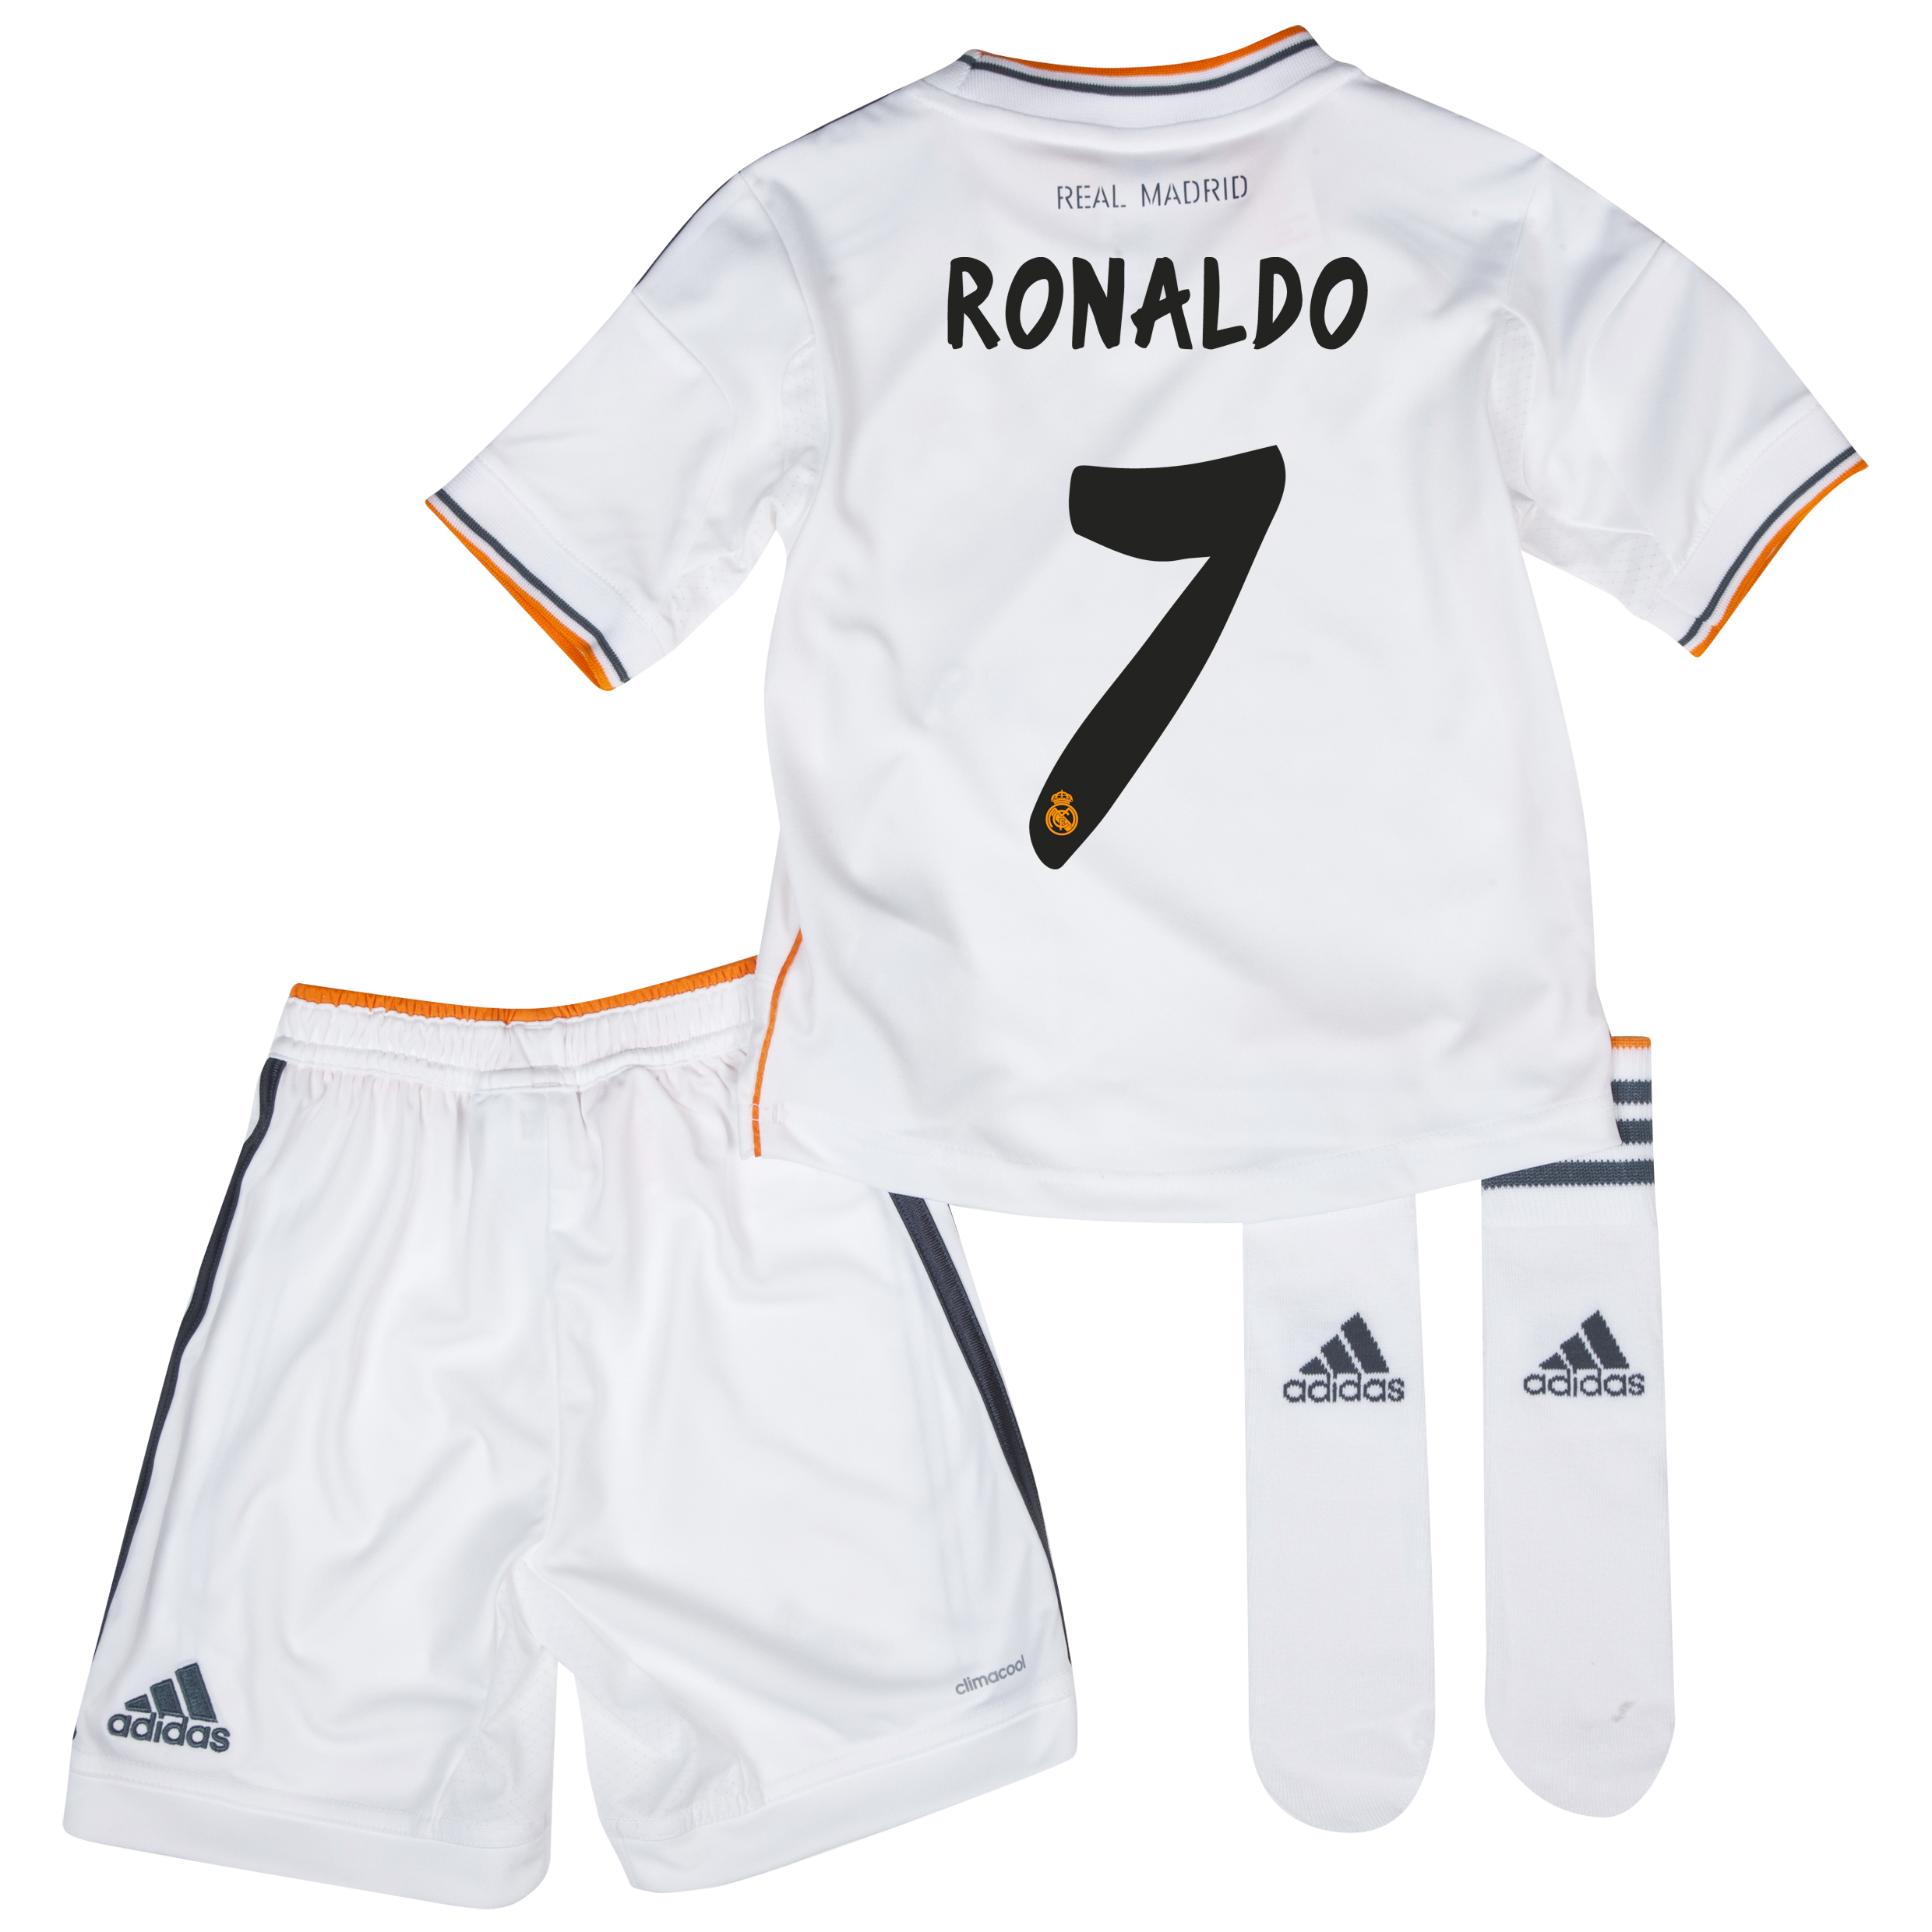 Real Madrid Home Mini Kit 2013/14 with Ronaldo 7 printing